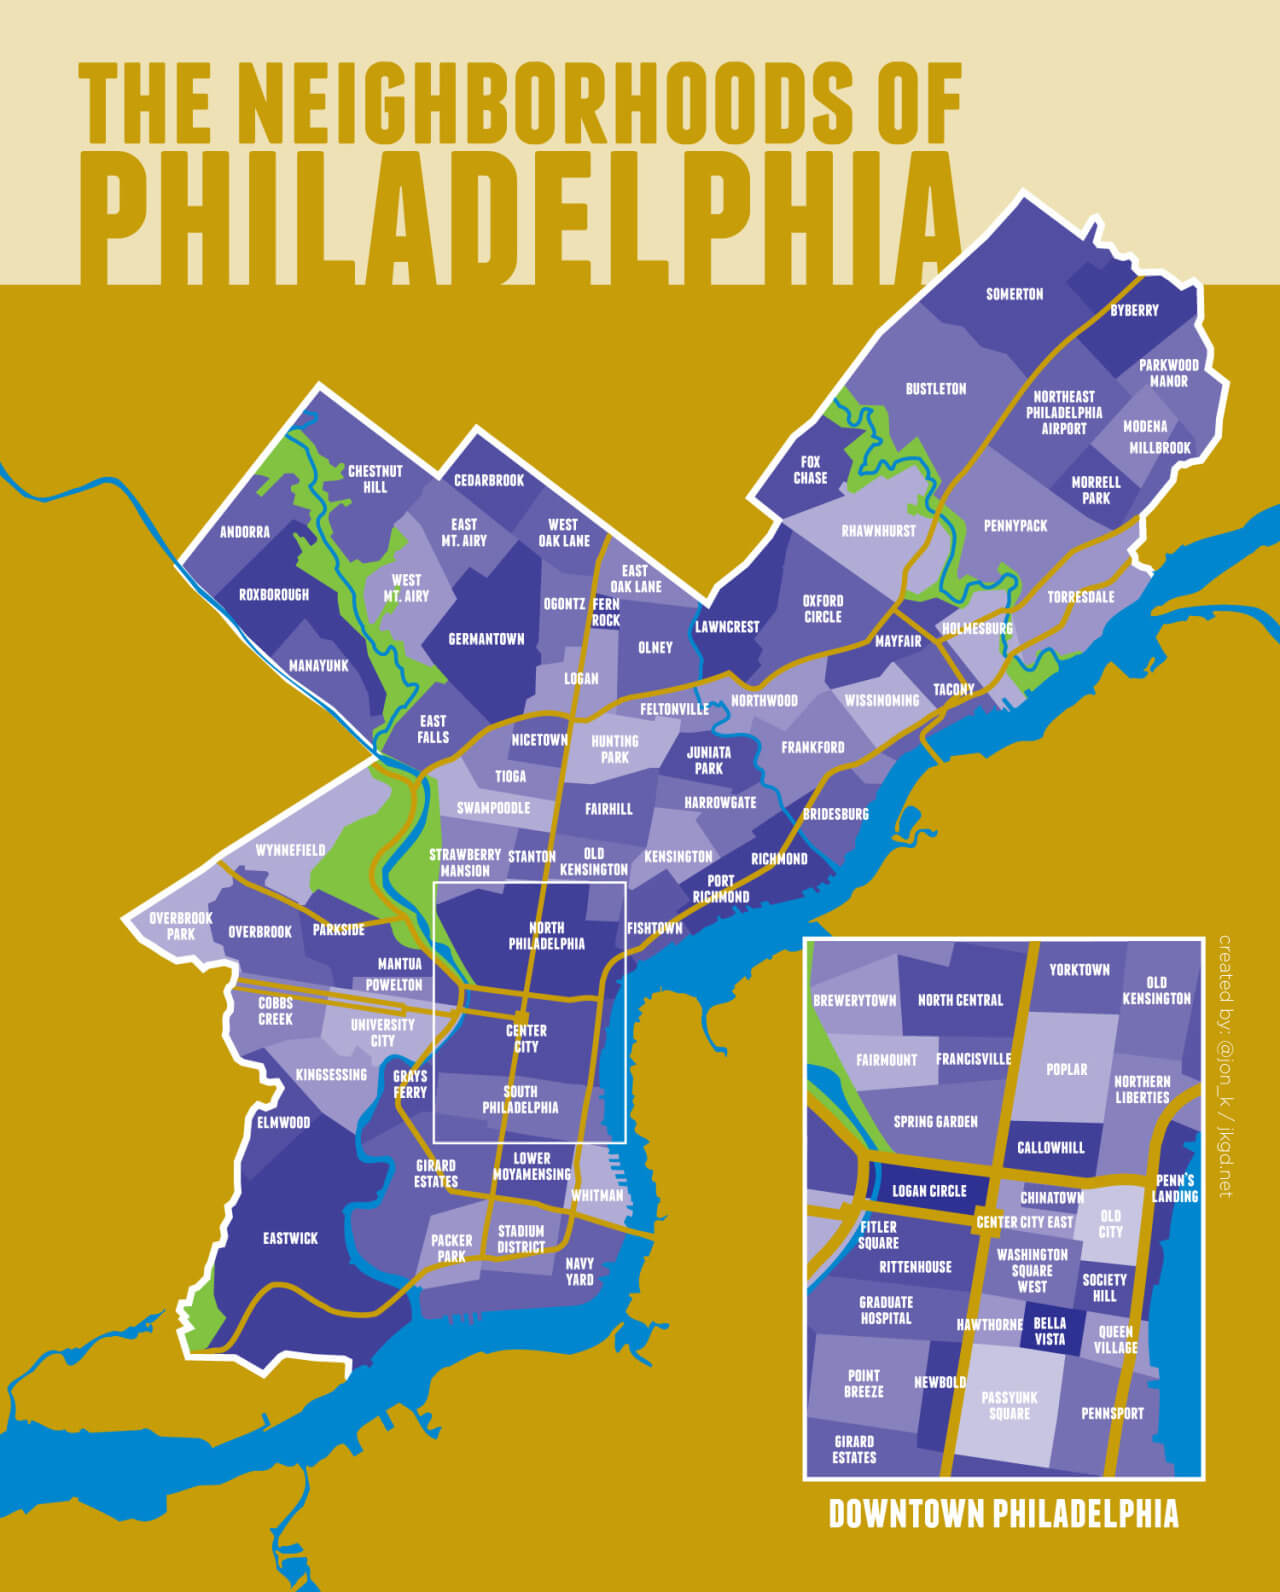 Chart showing neighborhoods of Philadelphia